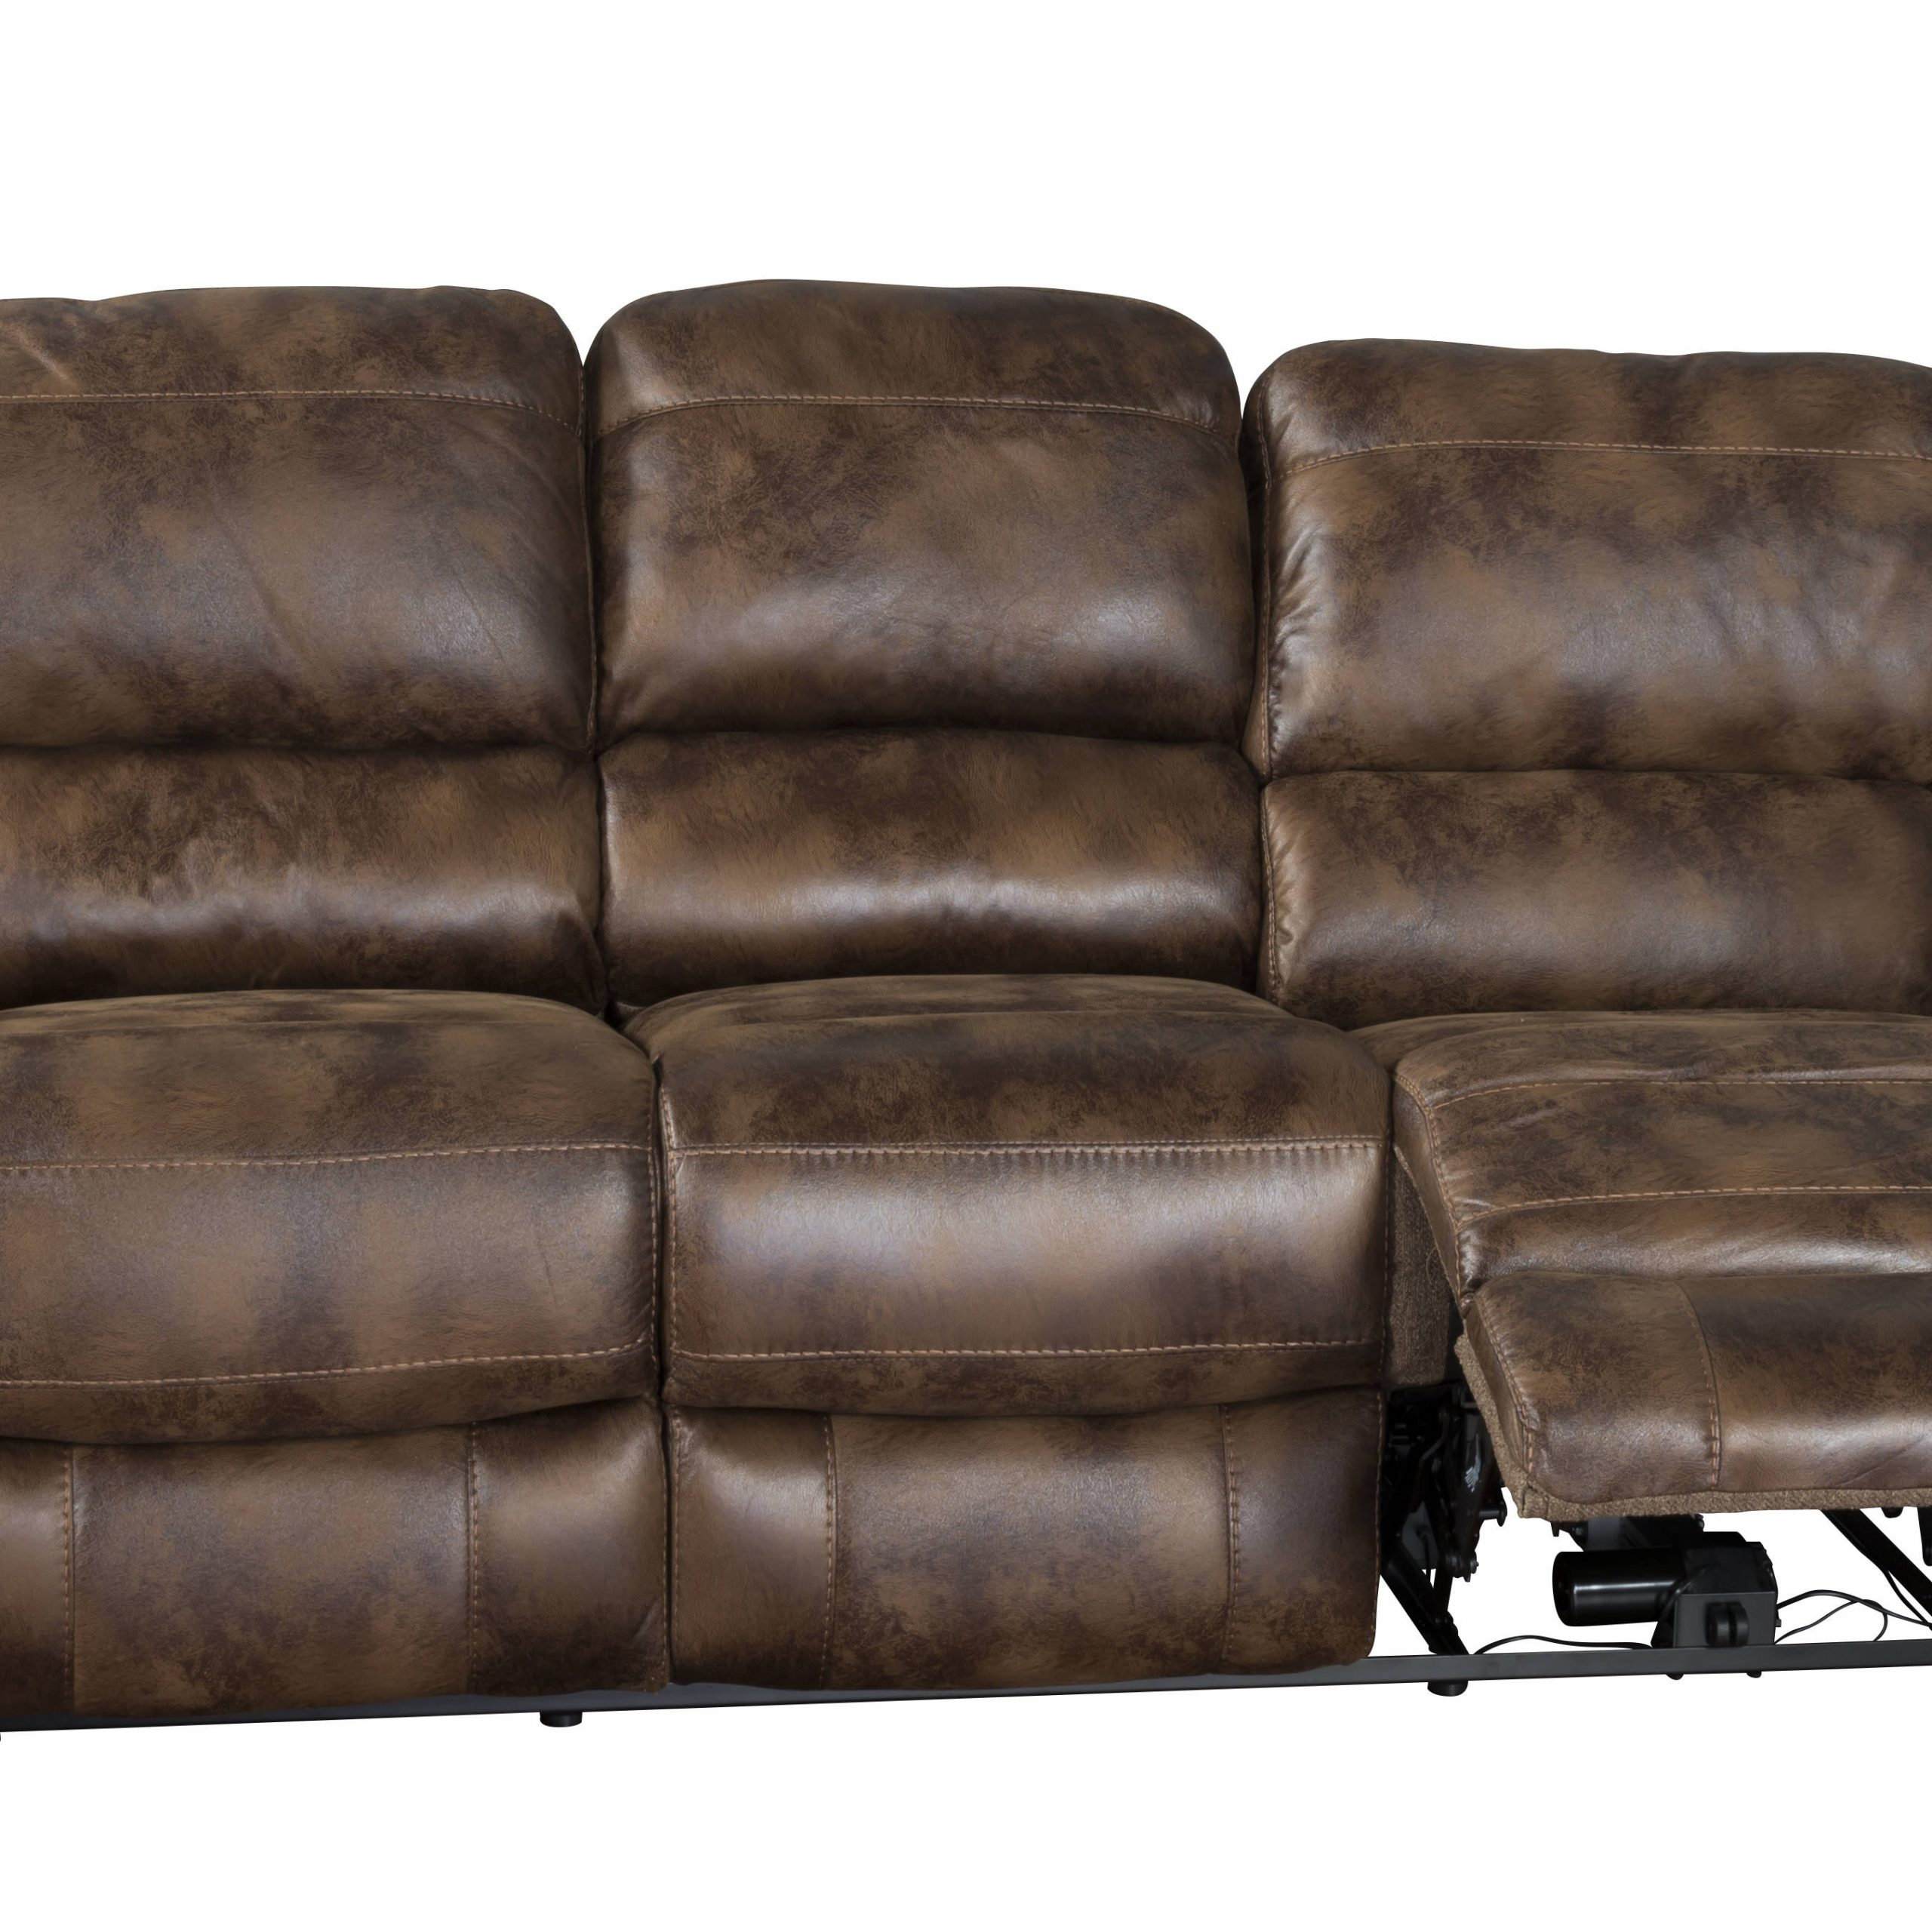 The Intended For Current Dual Power Reclining Sofas (View 3 of 20)